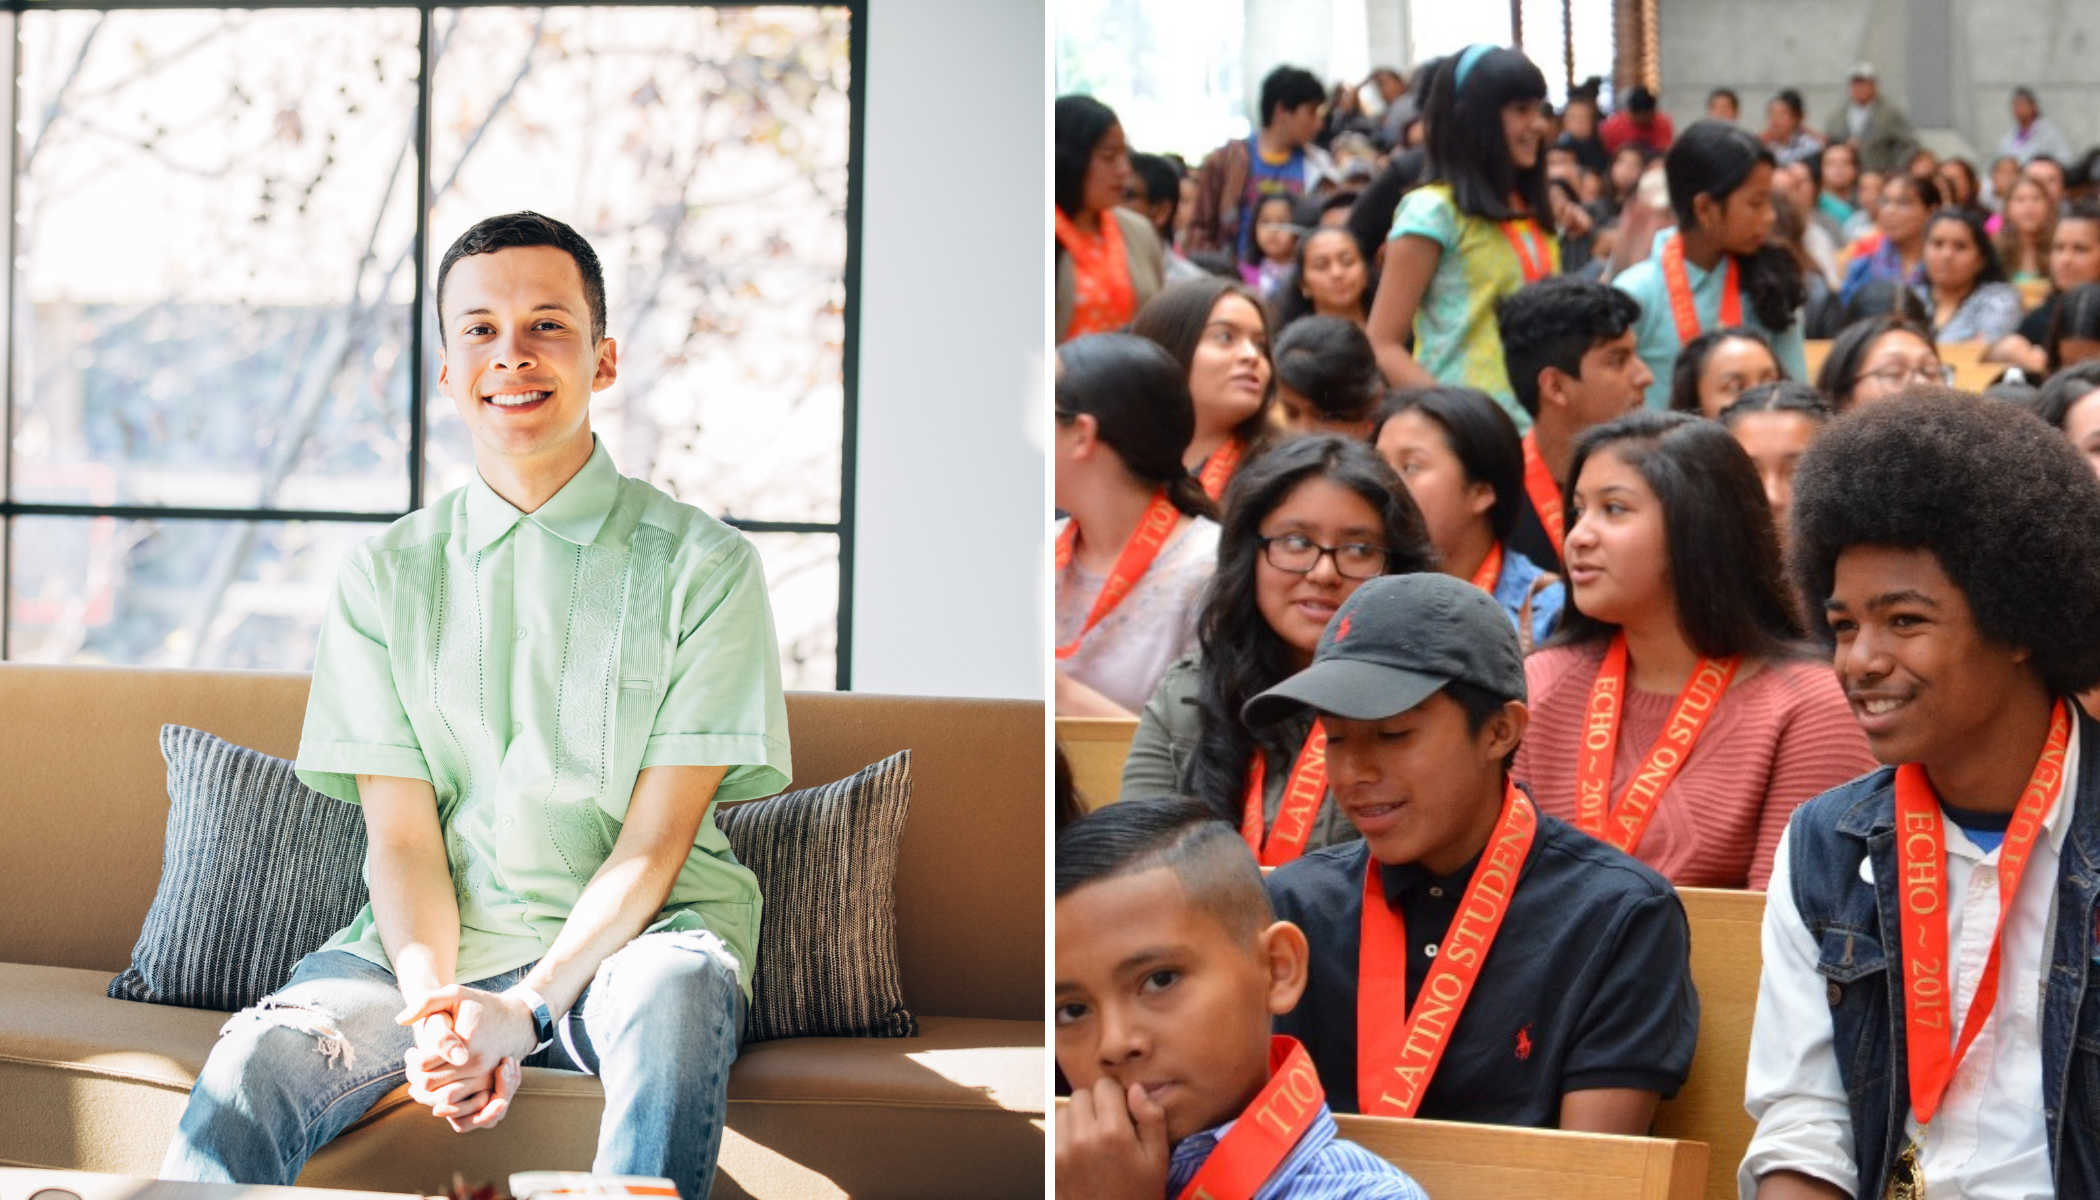 An image of a man in a green shirt smiling next to an image of children with orange medals on.